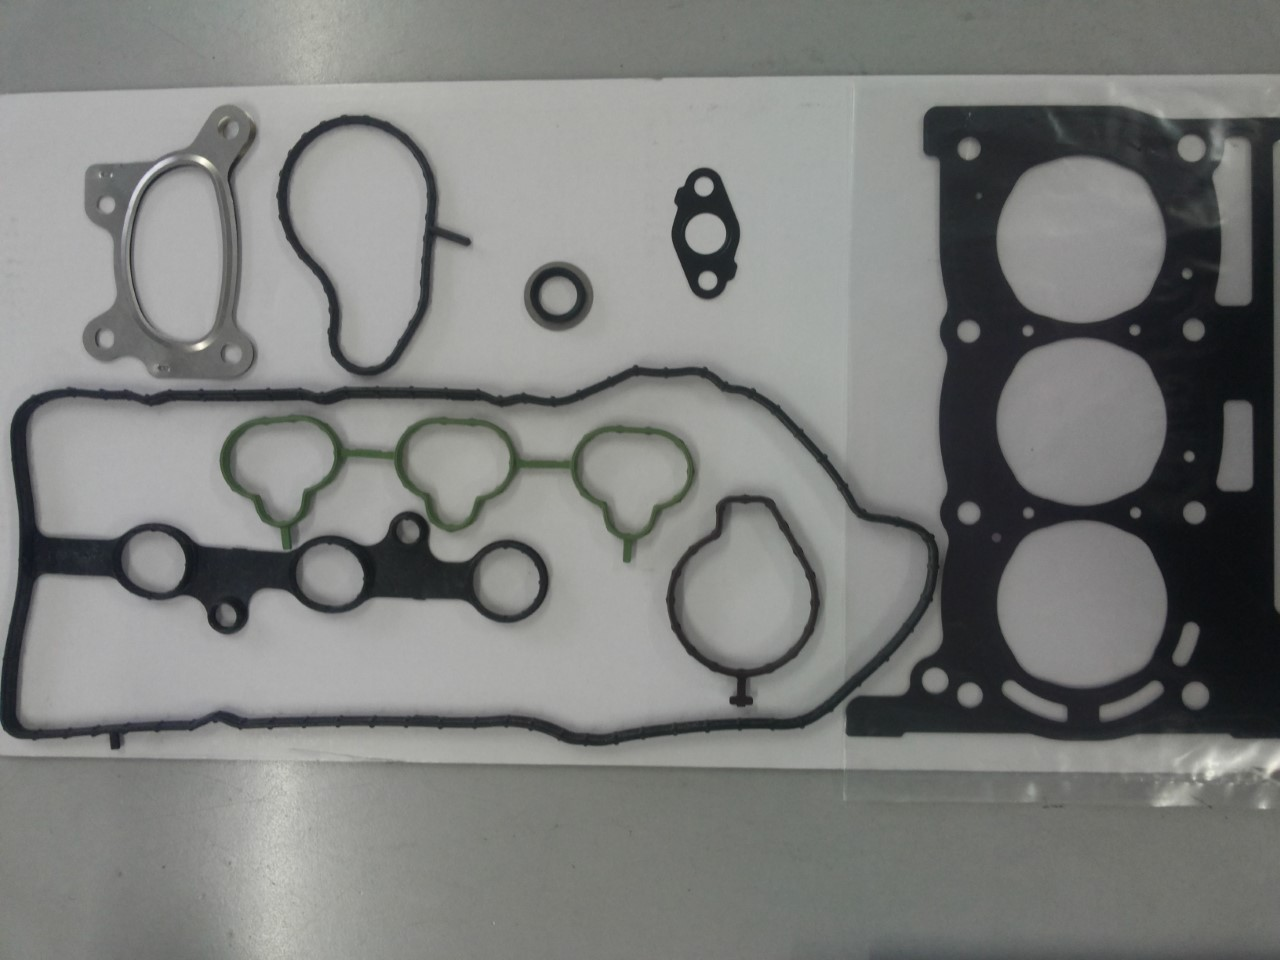 1 3 variant of engine the 1 0 engine as stated in the brochure as a 1kr ve engine will this 1kr ve engine gasket have some surprise differences when  [ 1280 x 960 Pixel ]